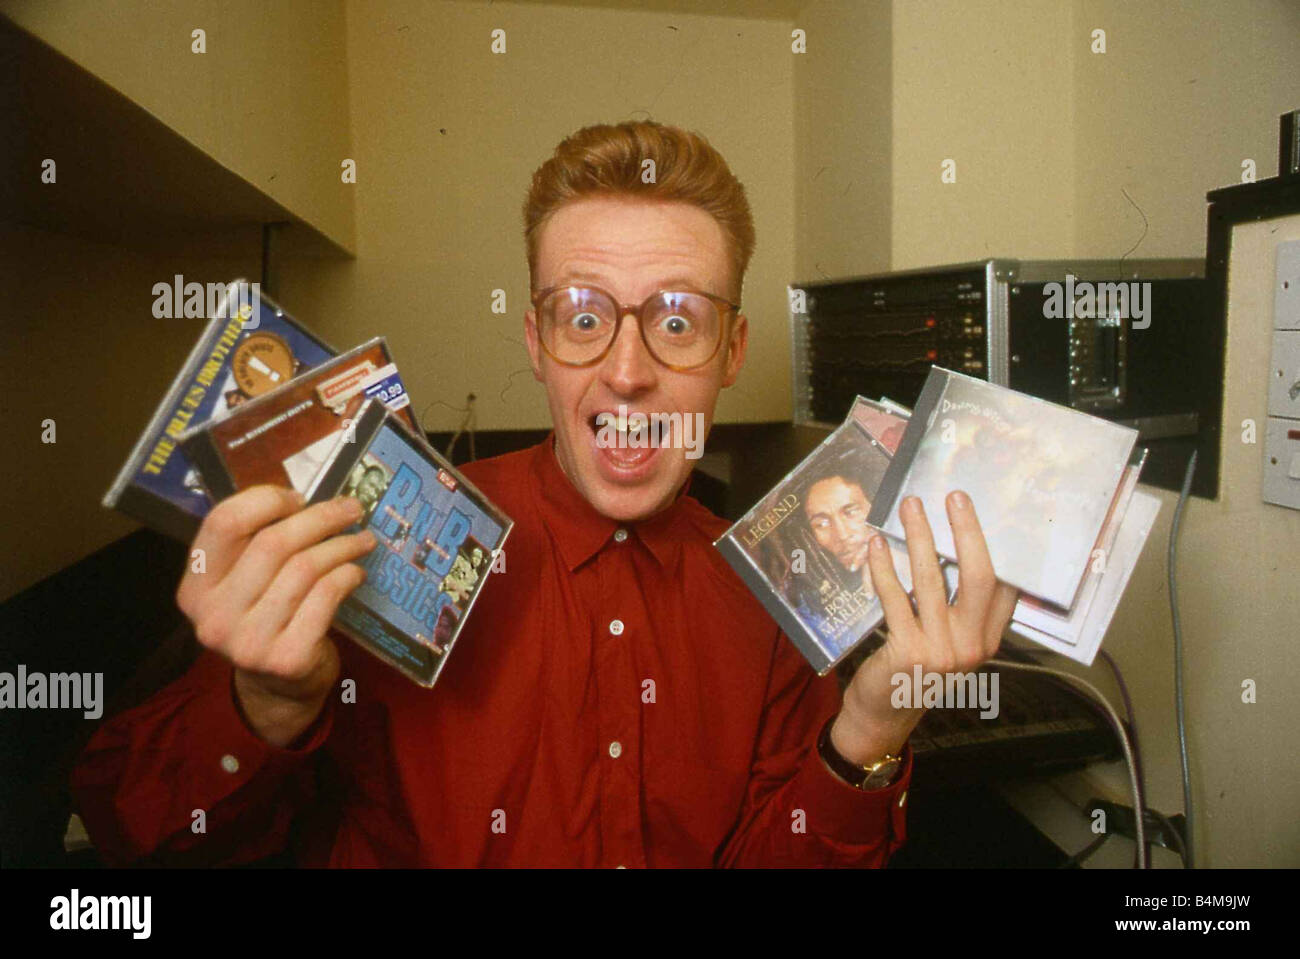 TV presenter Bryan Burnett holding various CD s - Stock Image